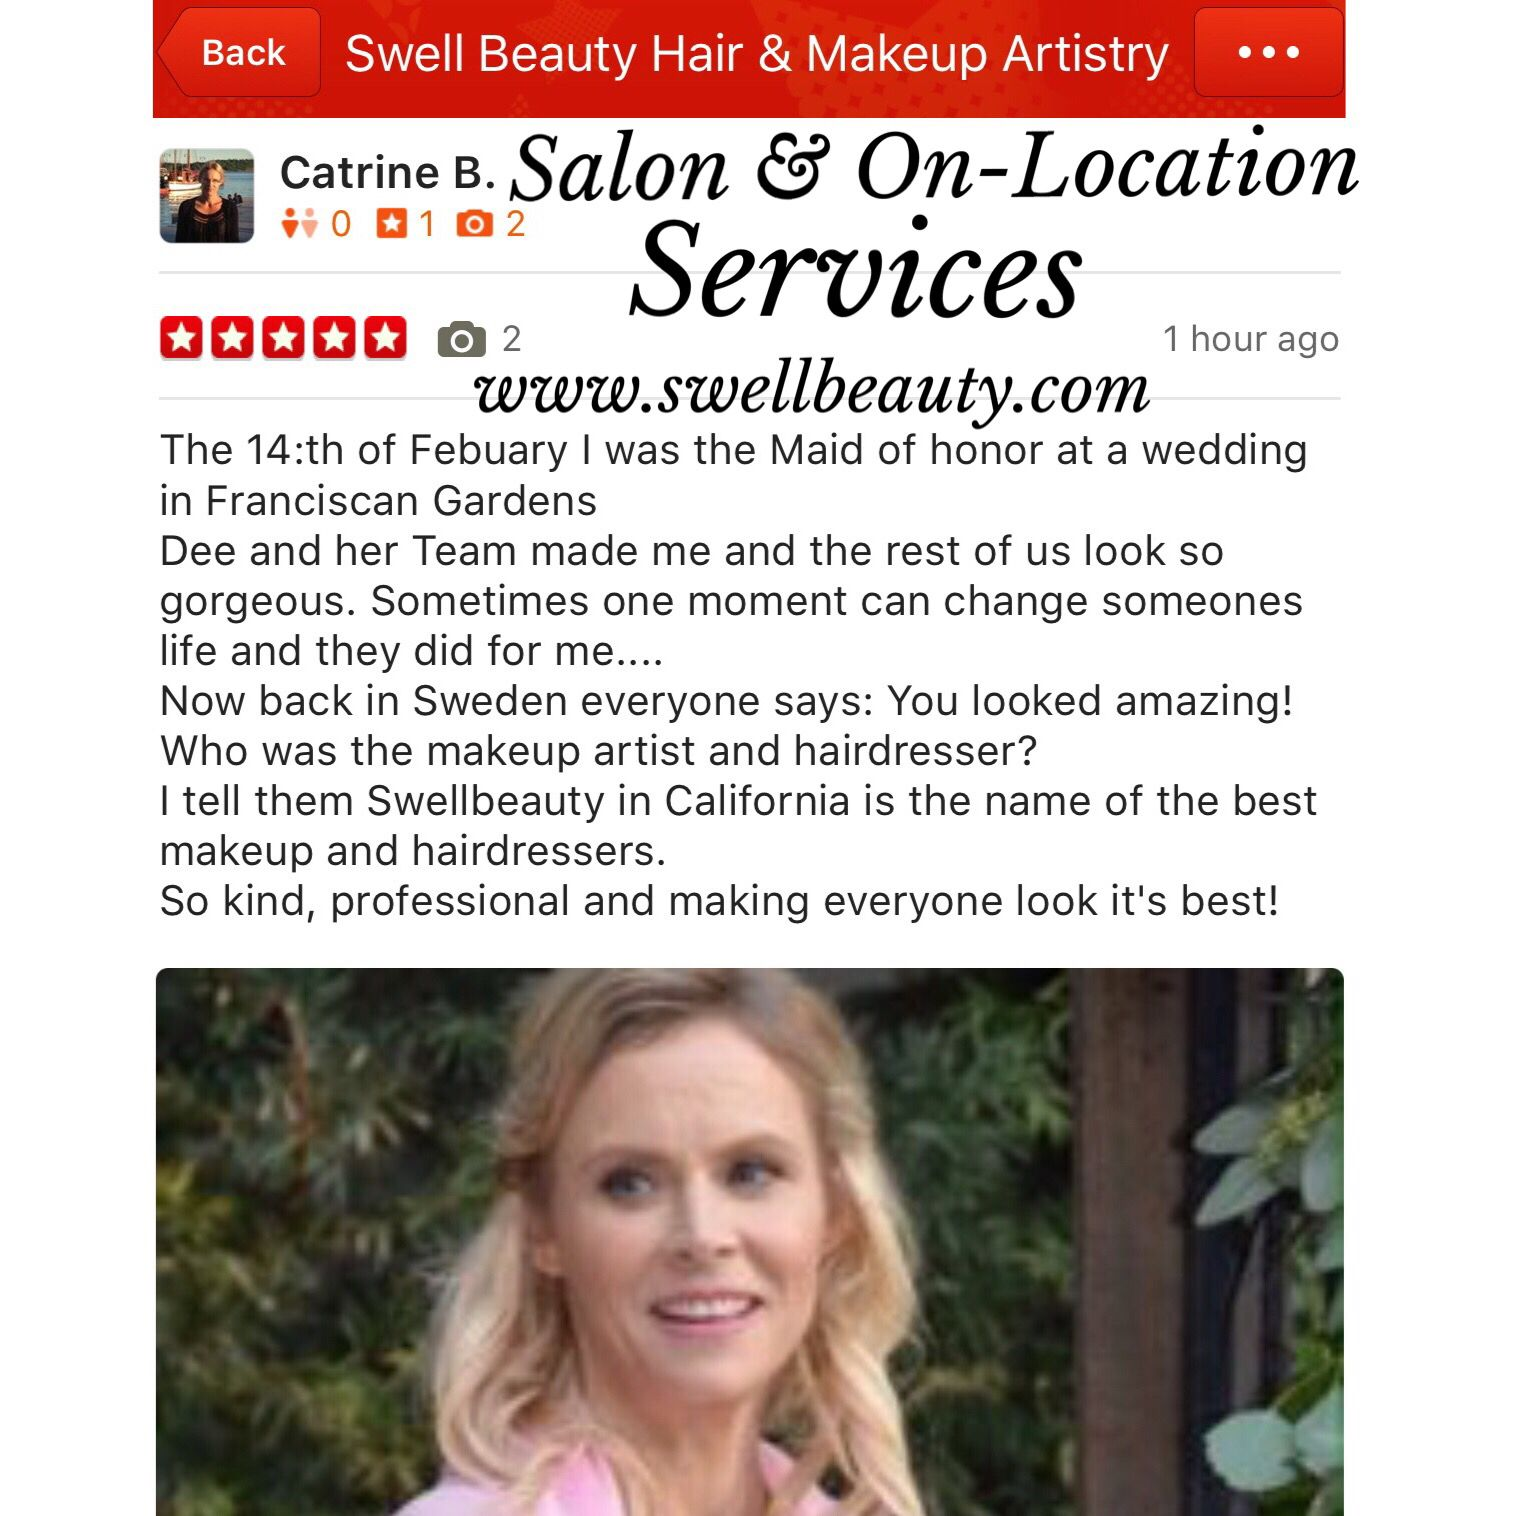 We love our Job and pampering our Clients !! Thanks for